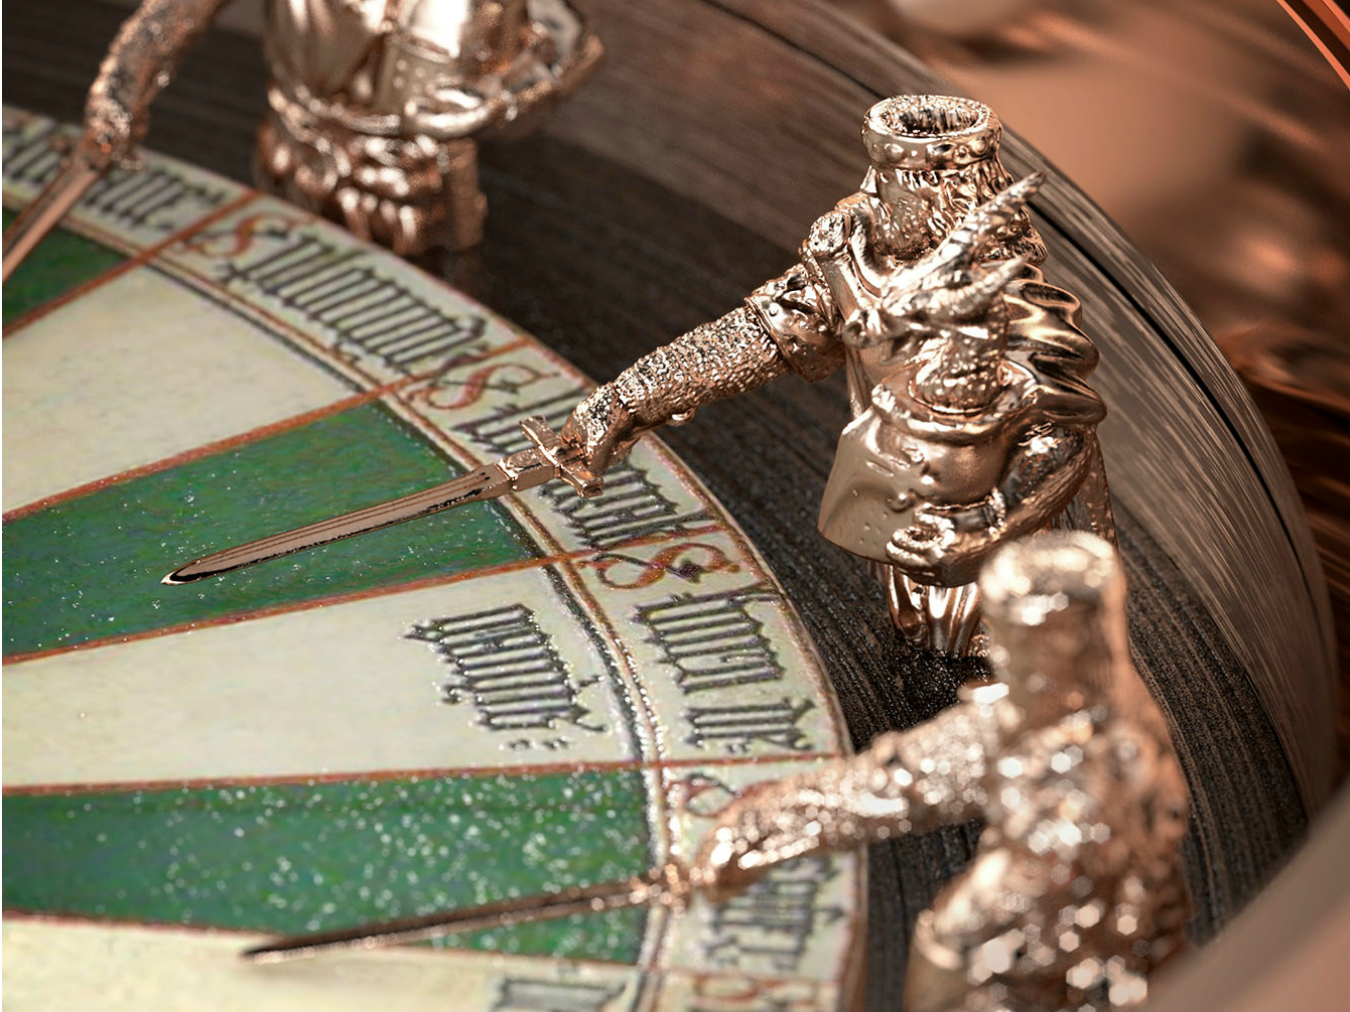 Roger dubuis excalibur round table watch montecristo for 12 knights of the round table